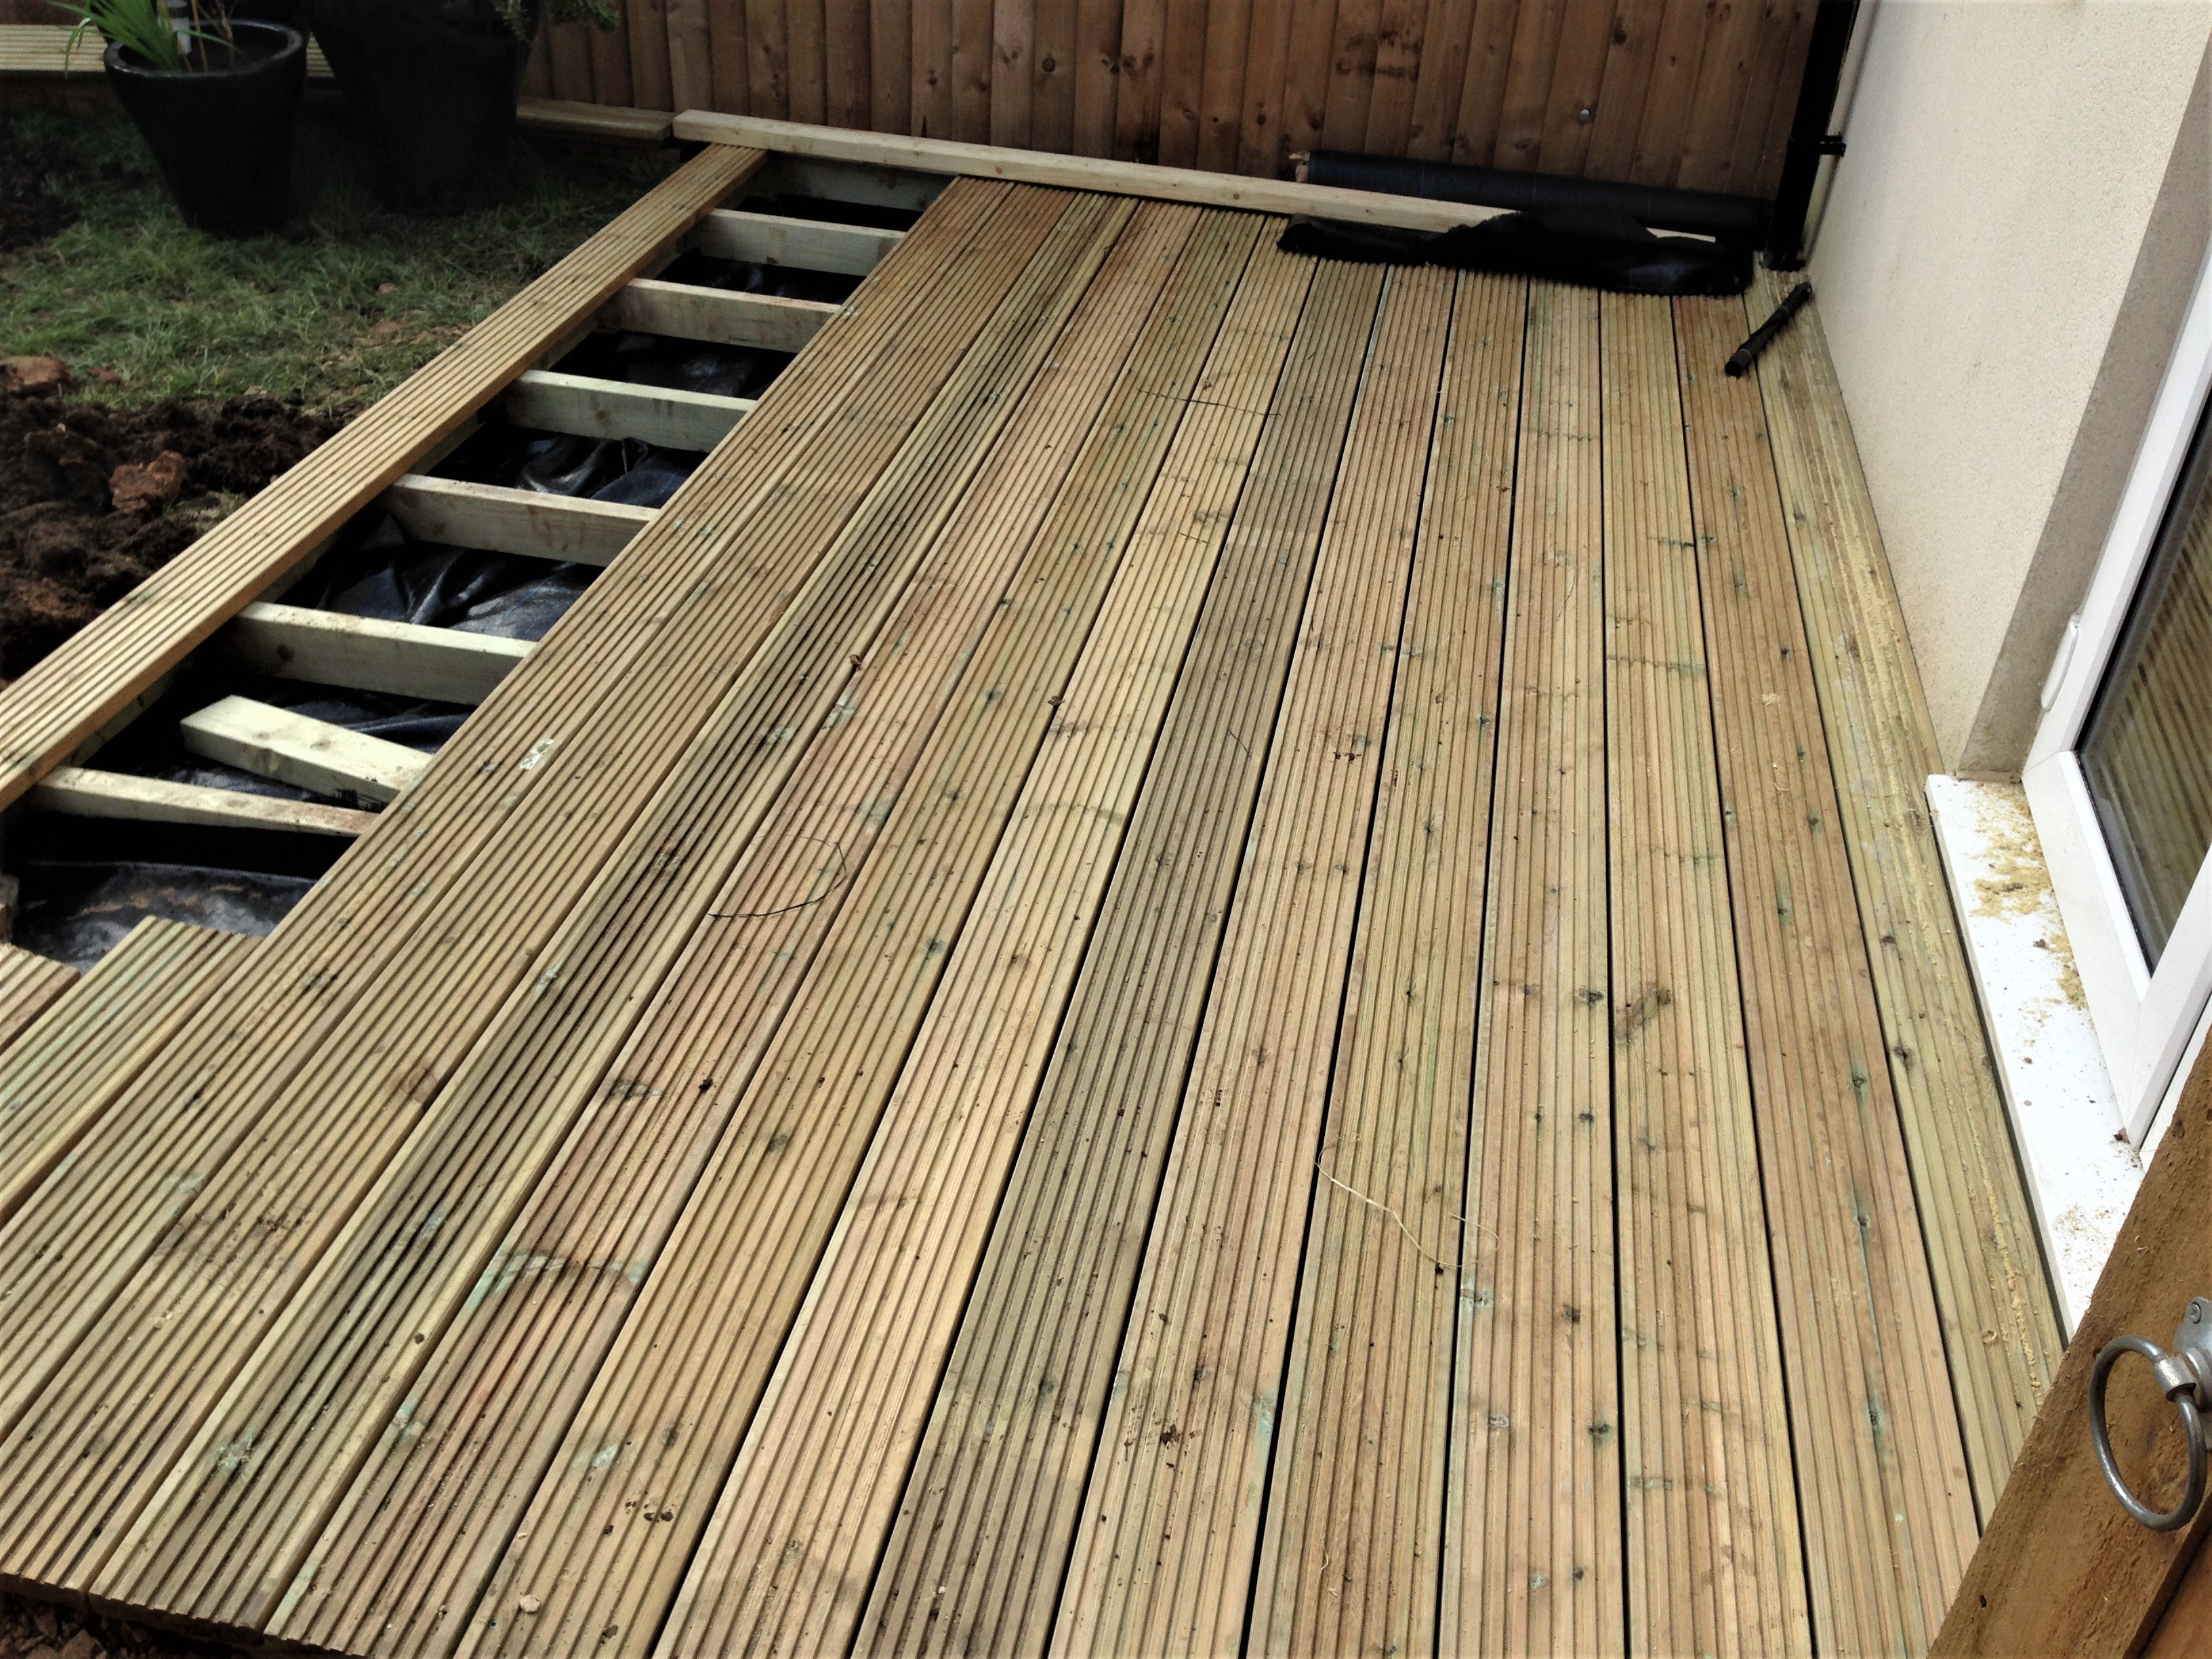 Decking under construction